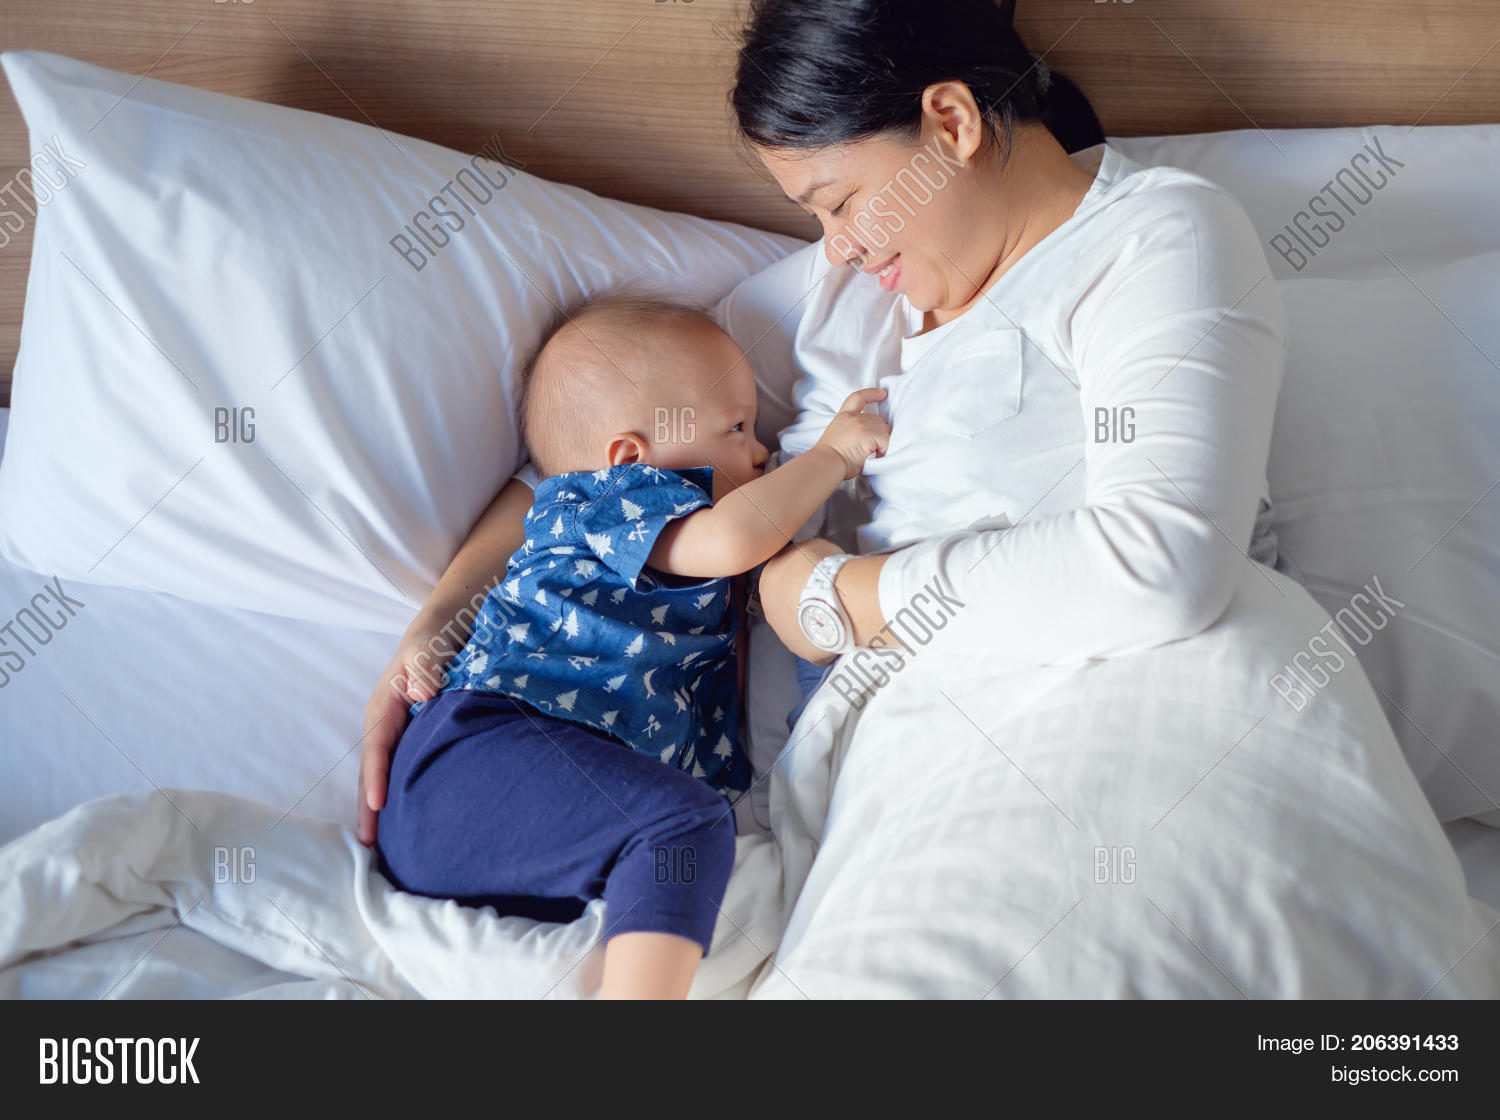 Asian mother is breastfeeding Cute little Asian 14 months / 1 year old  toddler baby boy